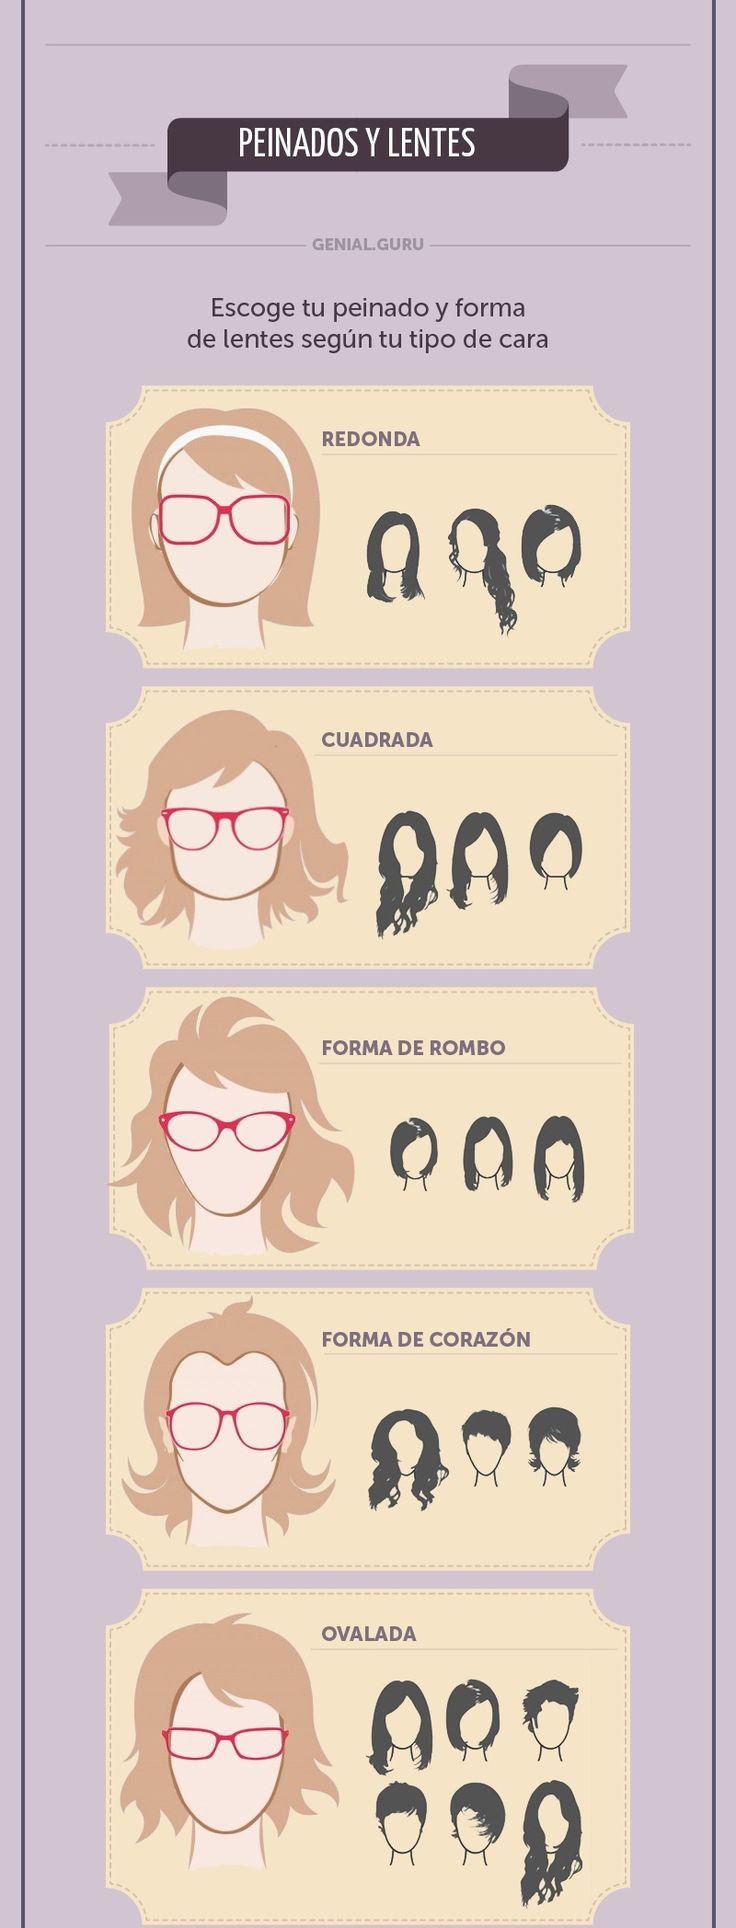 How to choose glasses and hairstyle according to your face shape.  Como escoger gafas y peinado de acuerdo a la forma de tu cara.